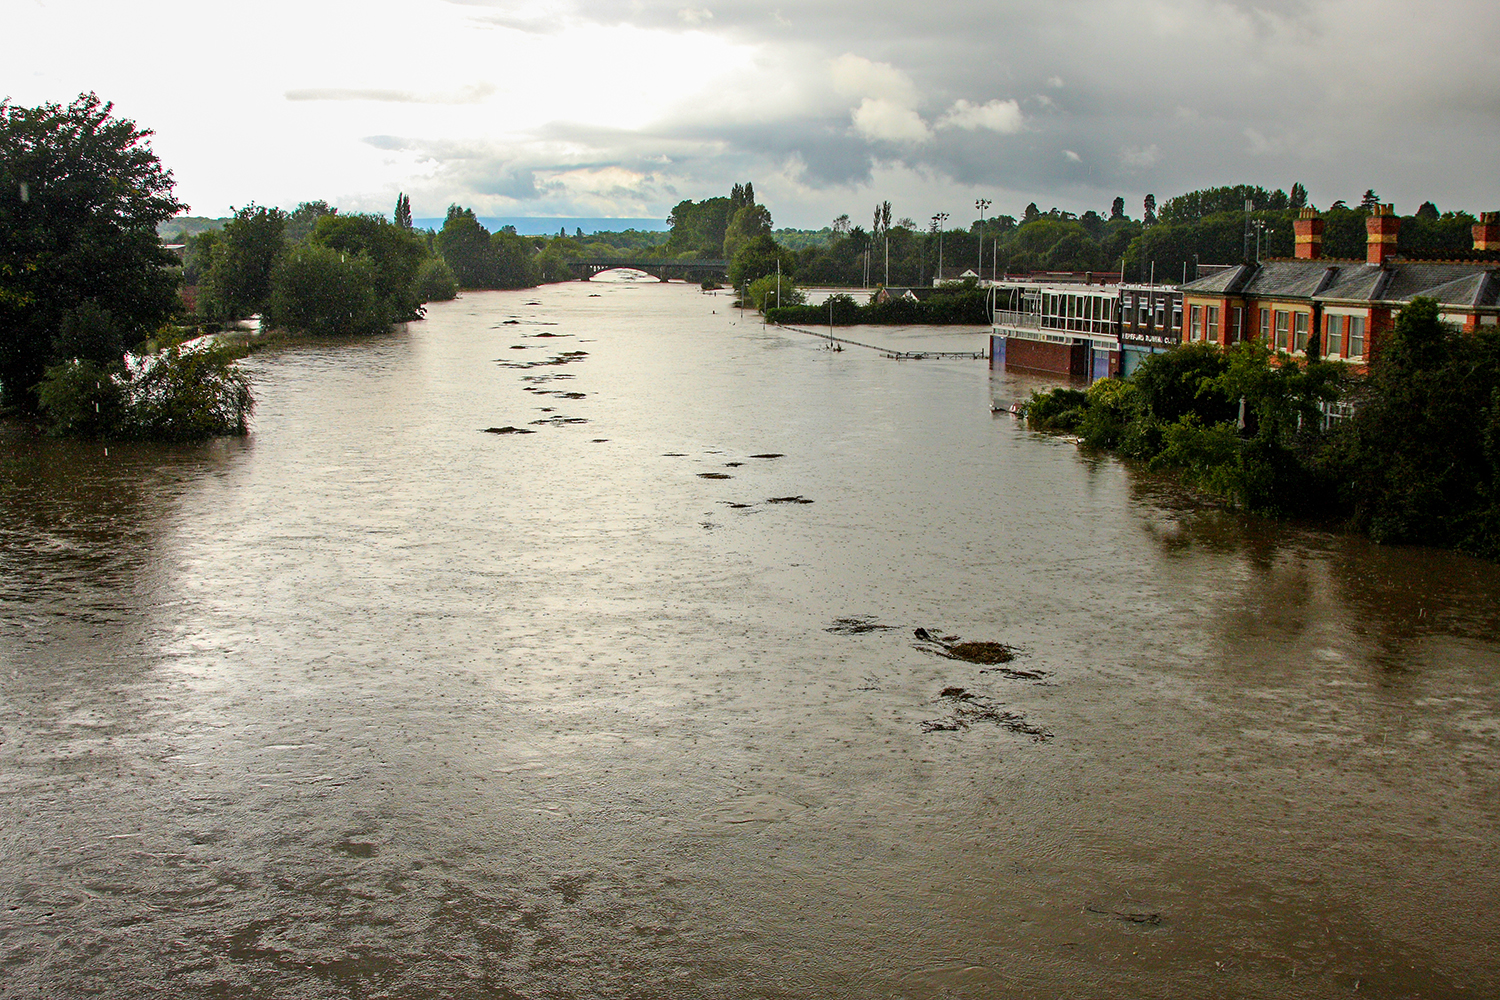 Floods, Hereford, River, Wye, Gwy, Rowing, Club, Bridge.